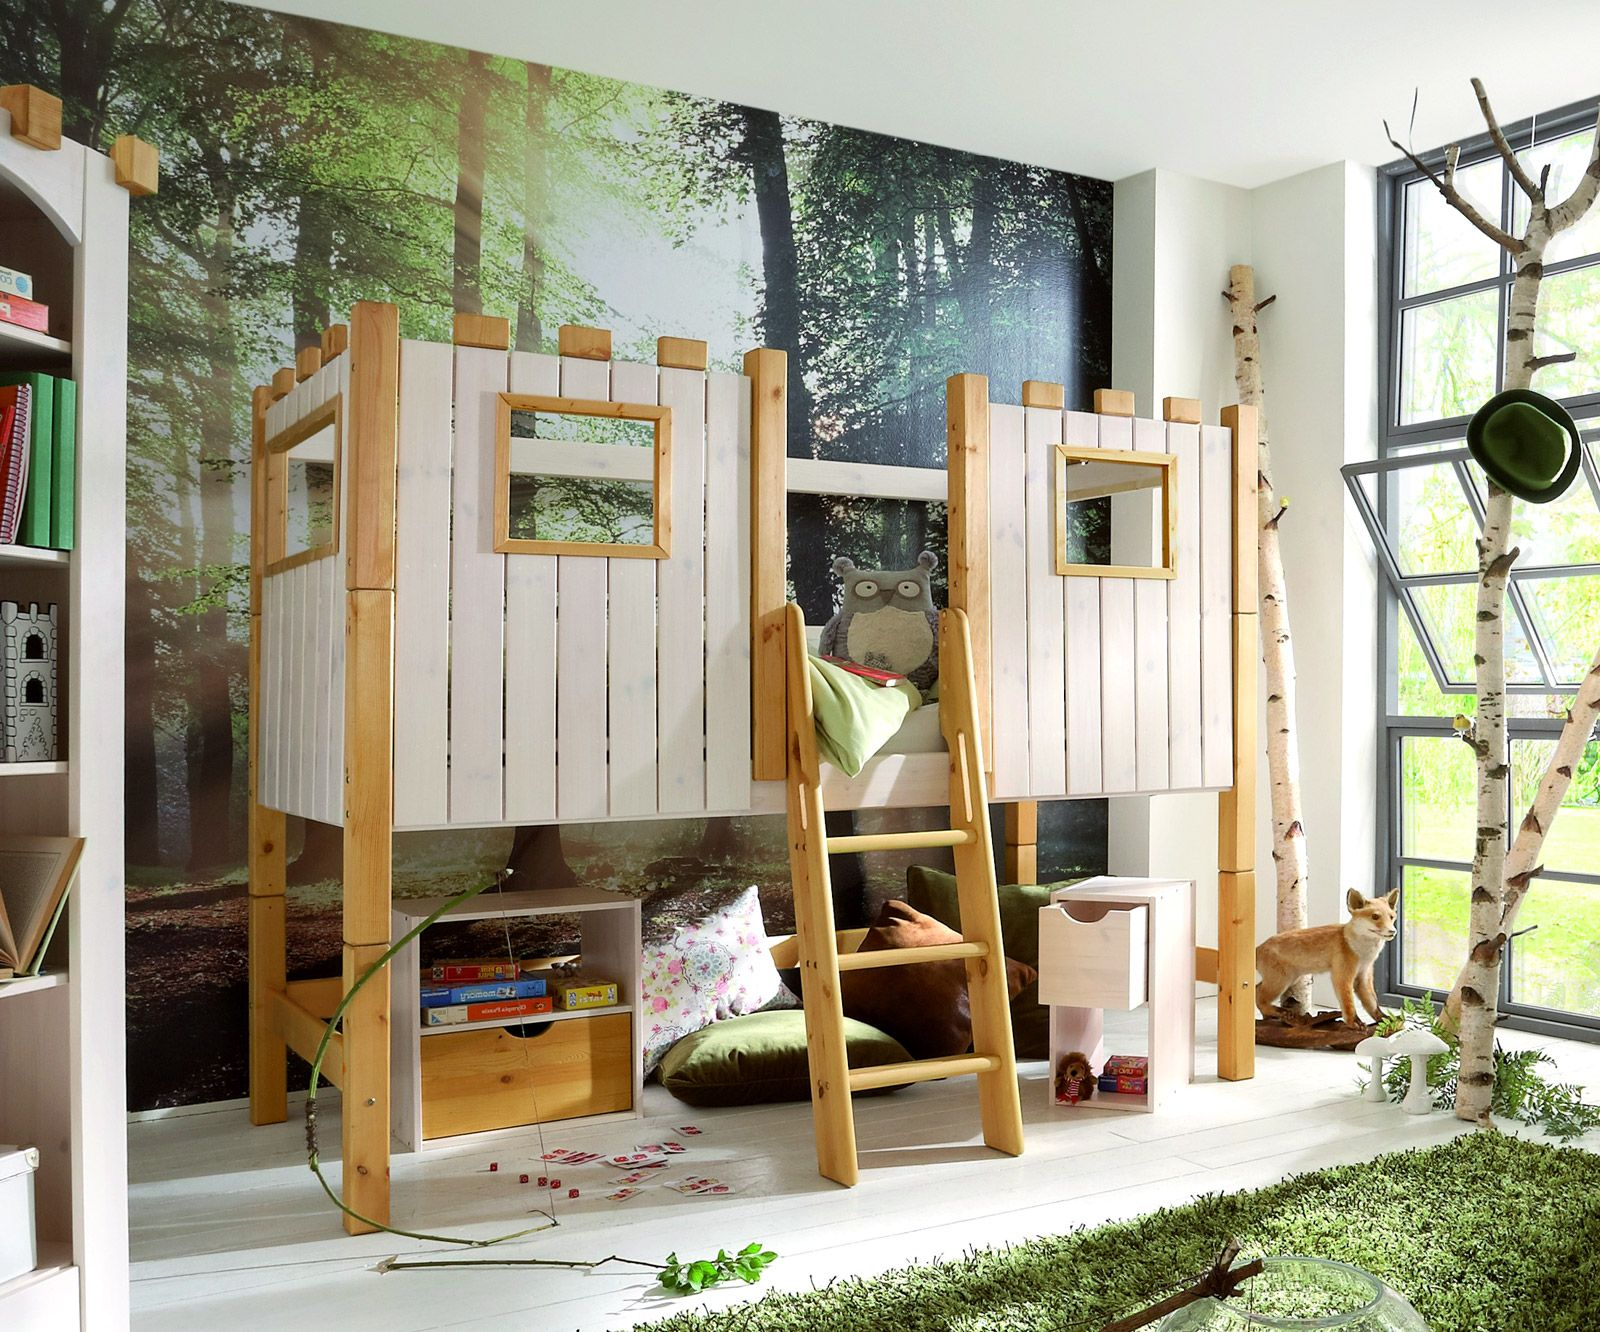 f r den kleinen ritter ritterburg hochbett kids paradise kinderbett hochbett. Black Bedroom Furniture Sets. Home Design Ideas